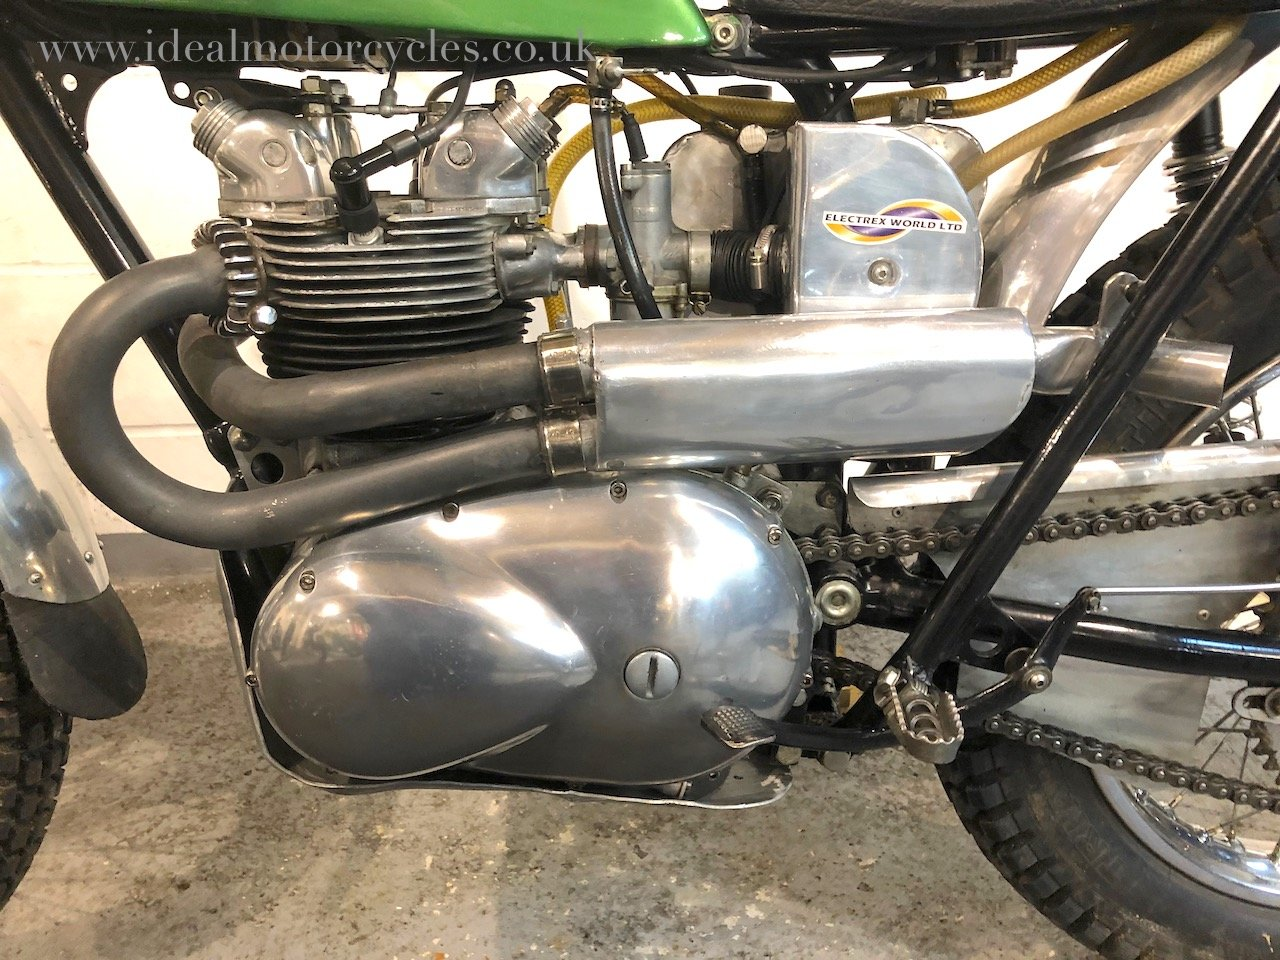 1964 Pre 65 Triumph 350cc Trials For Sale (picture 5 of 6)